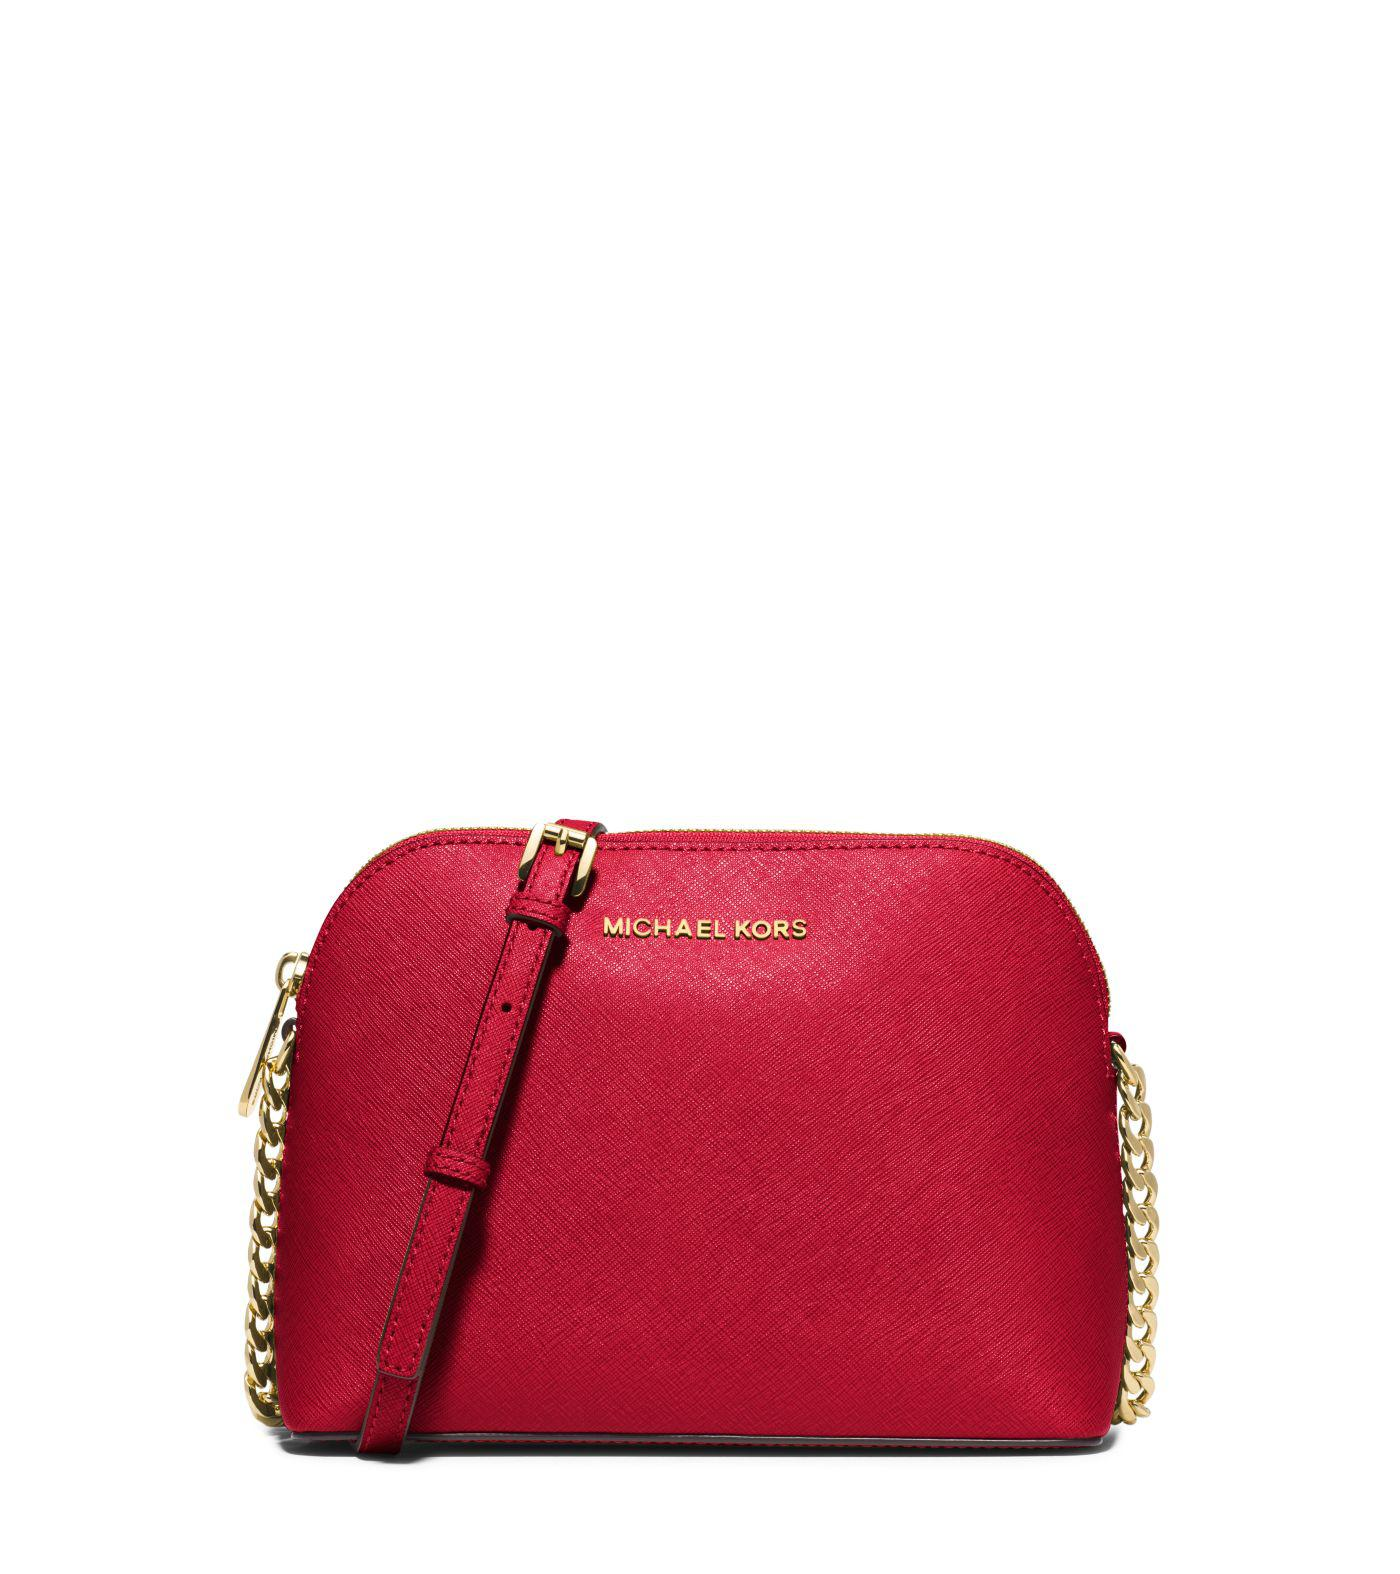 a388a2c7fbca Lyst - Michael Kors Cindy Large Saffiano Leather Crossbody Bag in Red